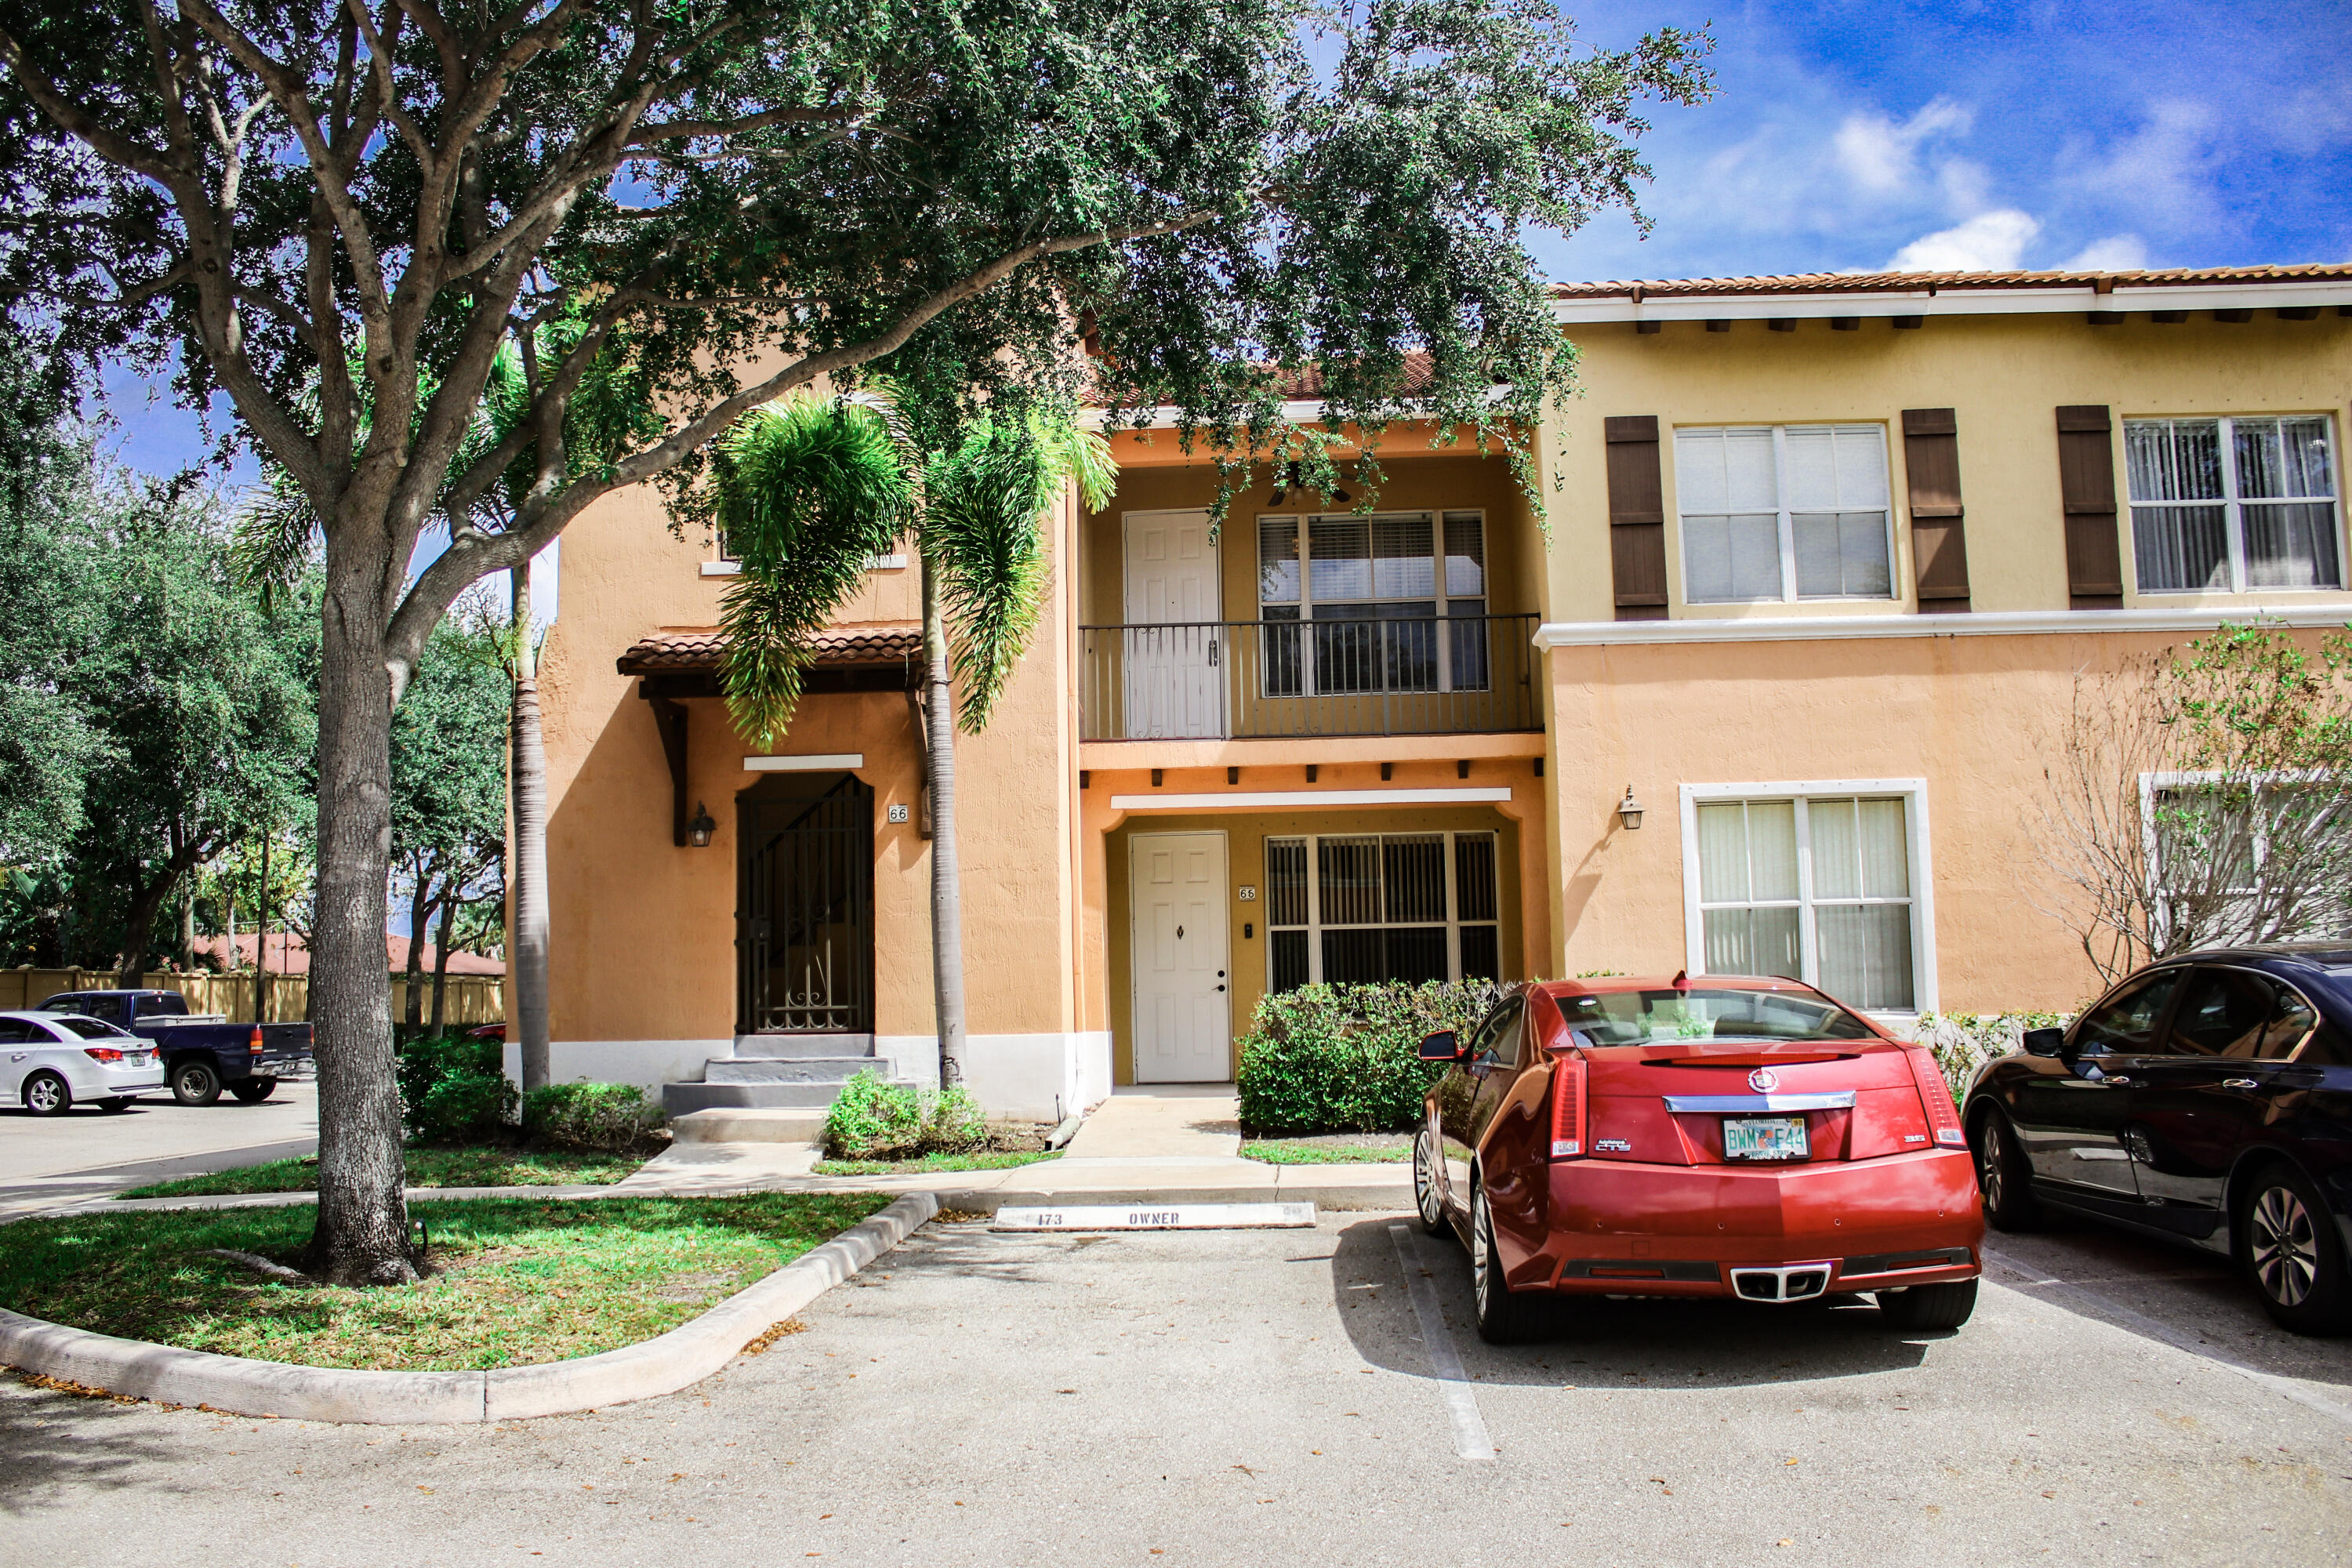 3561 Forest Hill Unit 66, Palm Springs, Florida 33406